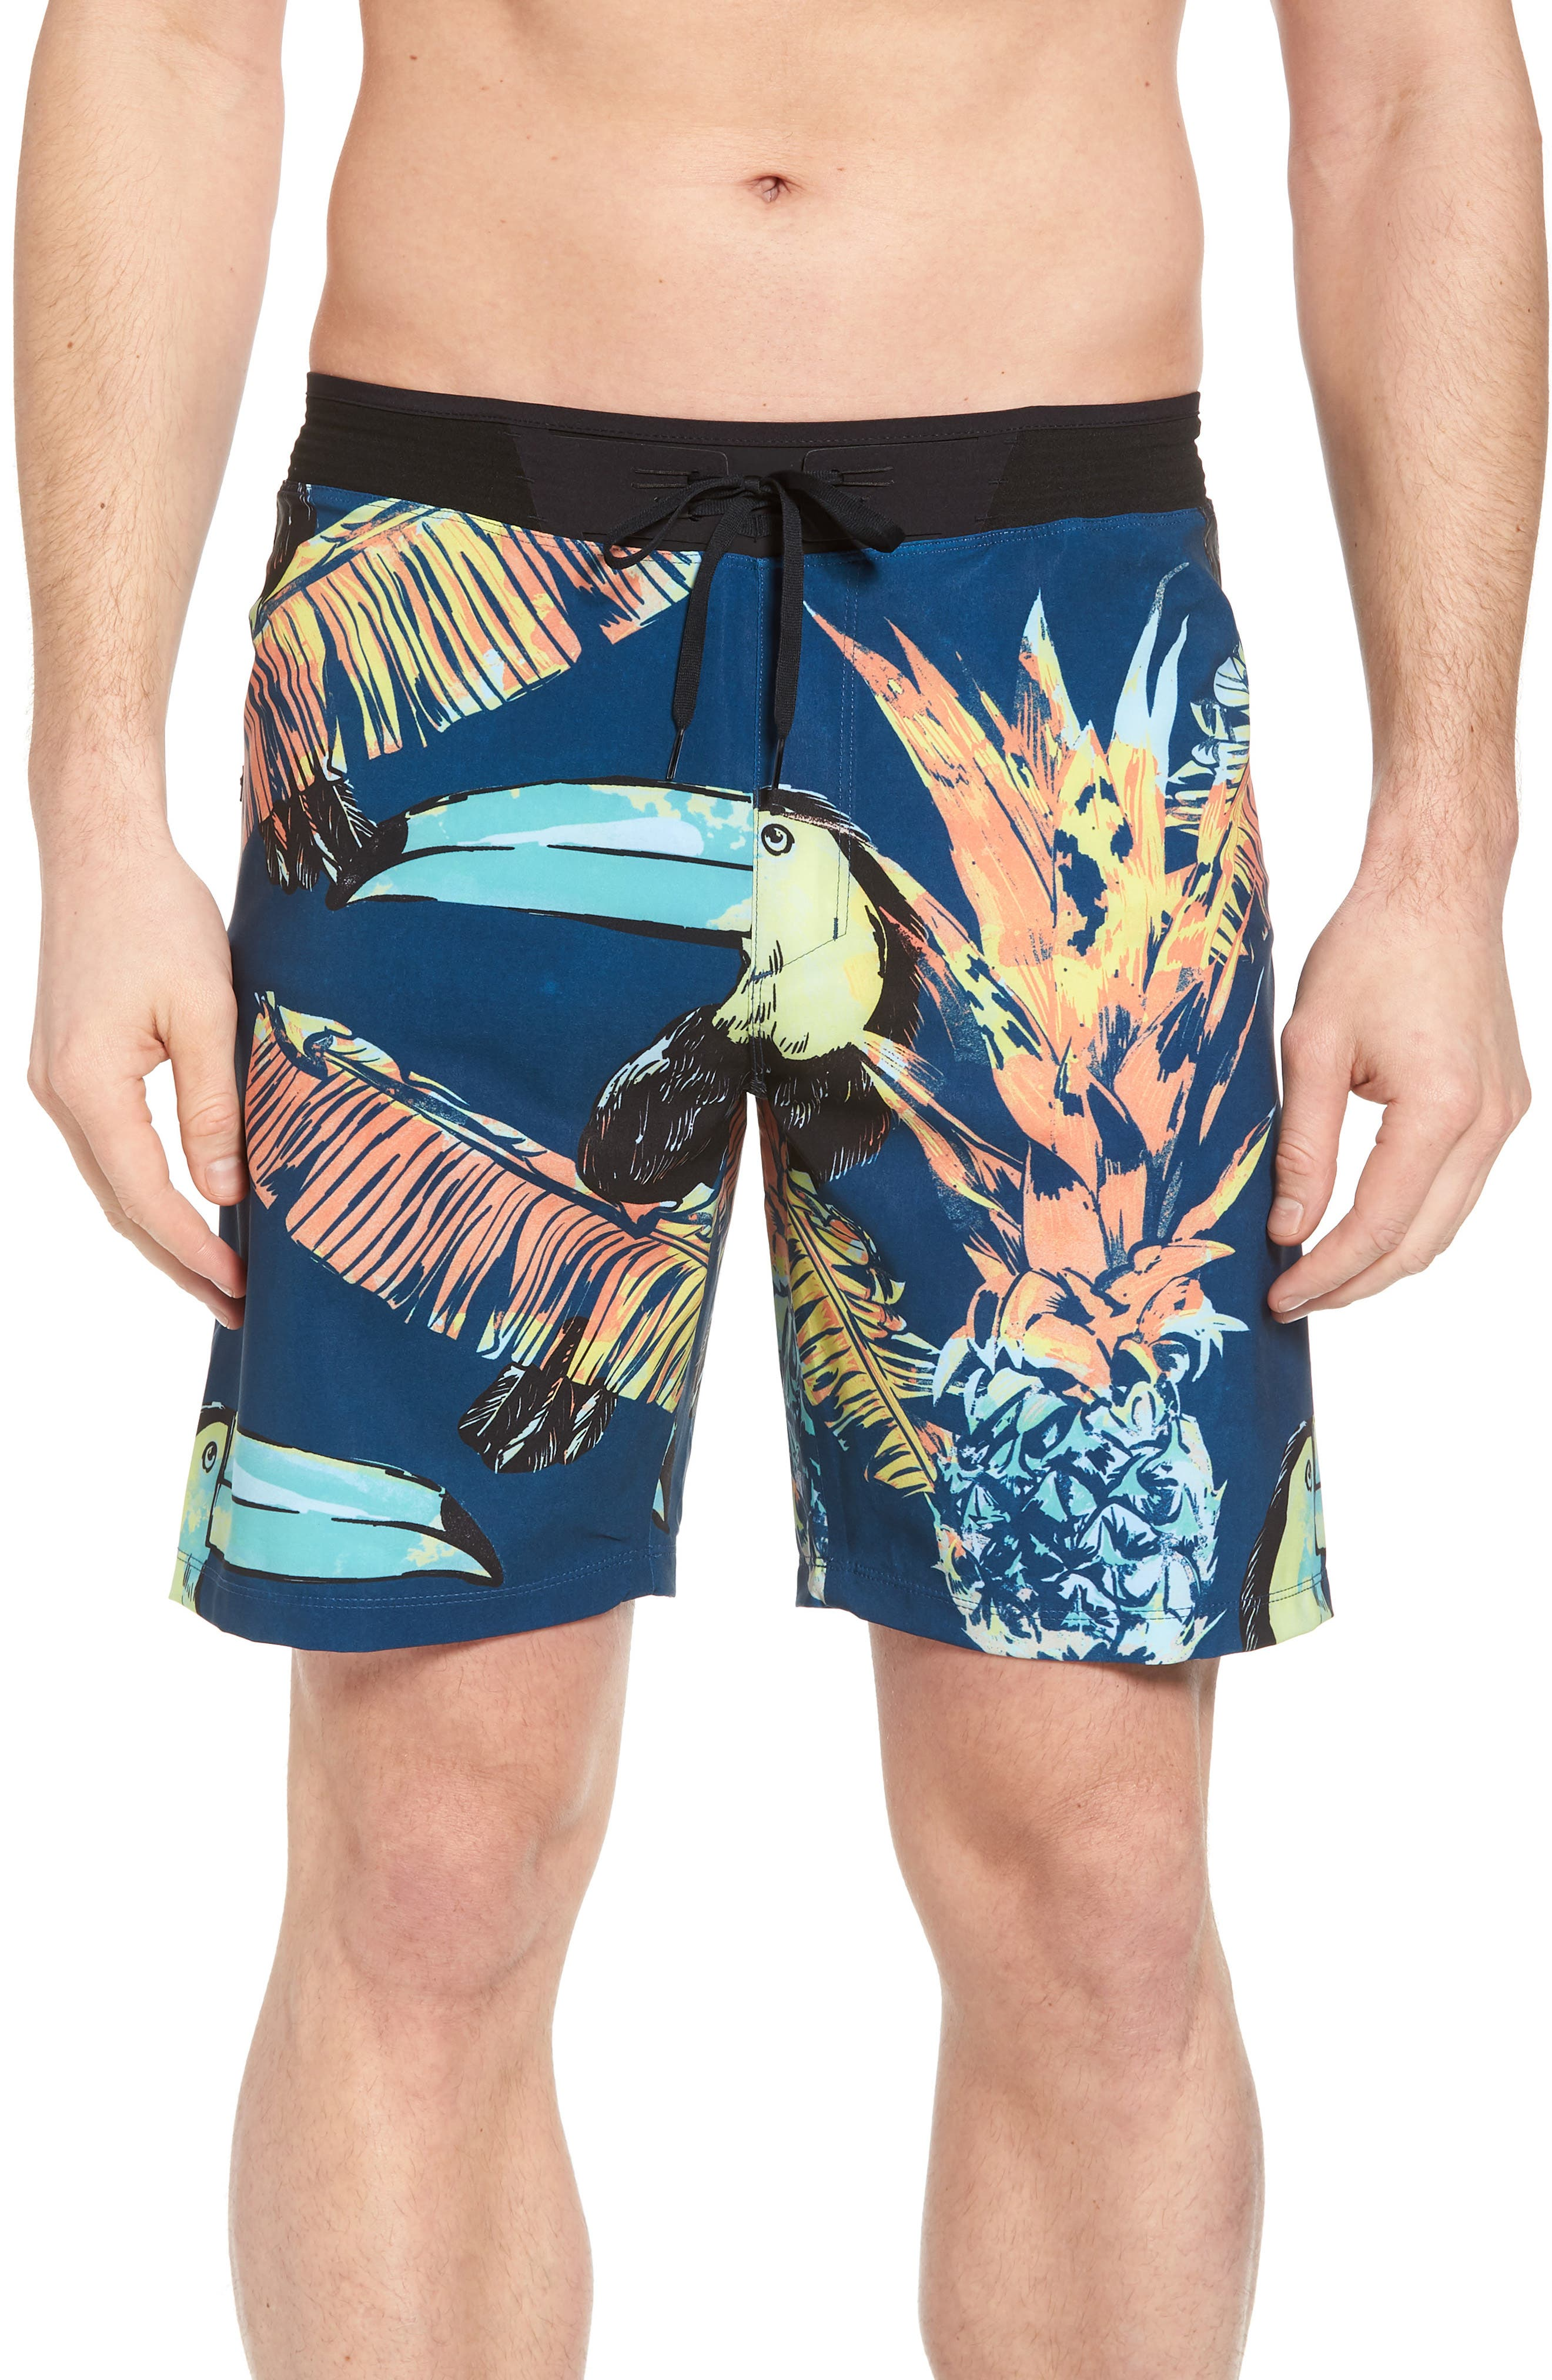 Phantom Hyperweave 3.0 Board Shorts,                             Main thumbnail 1, color,                             474